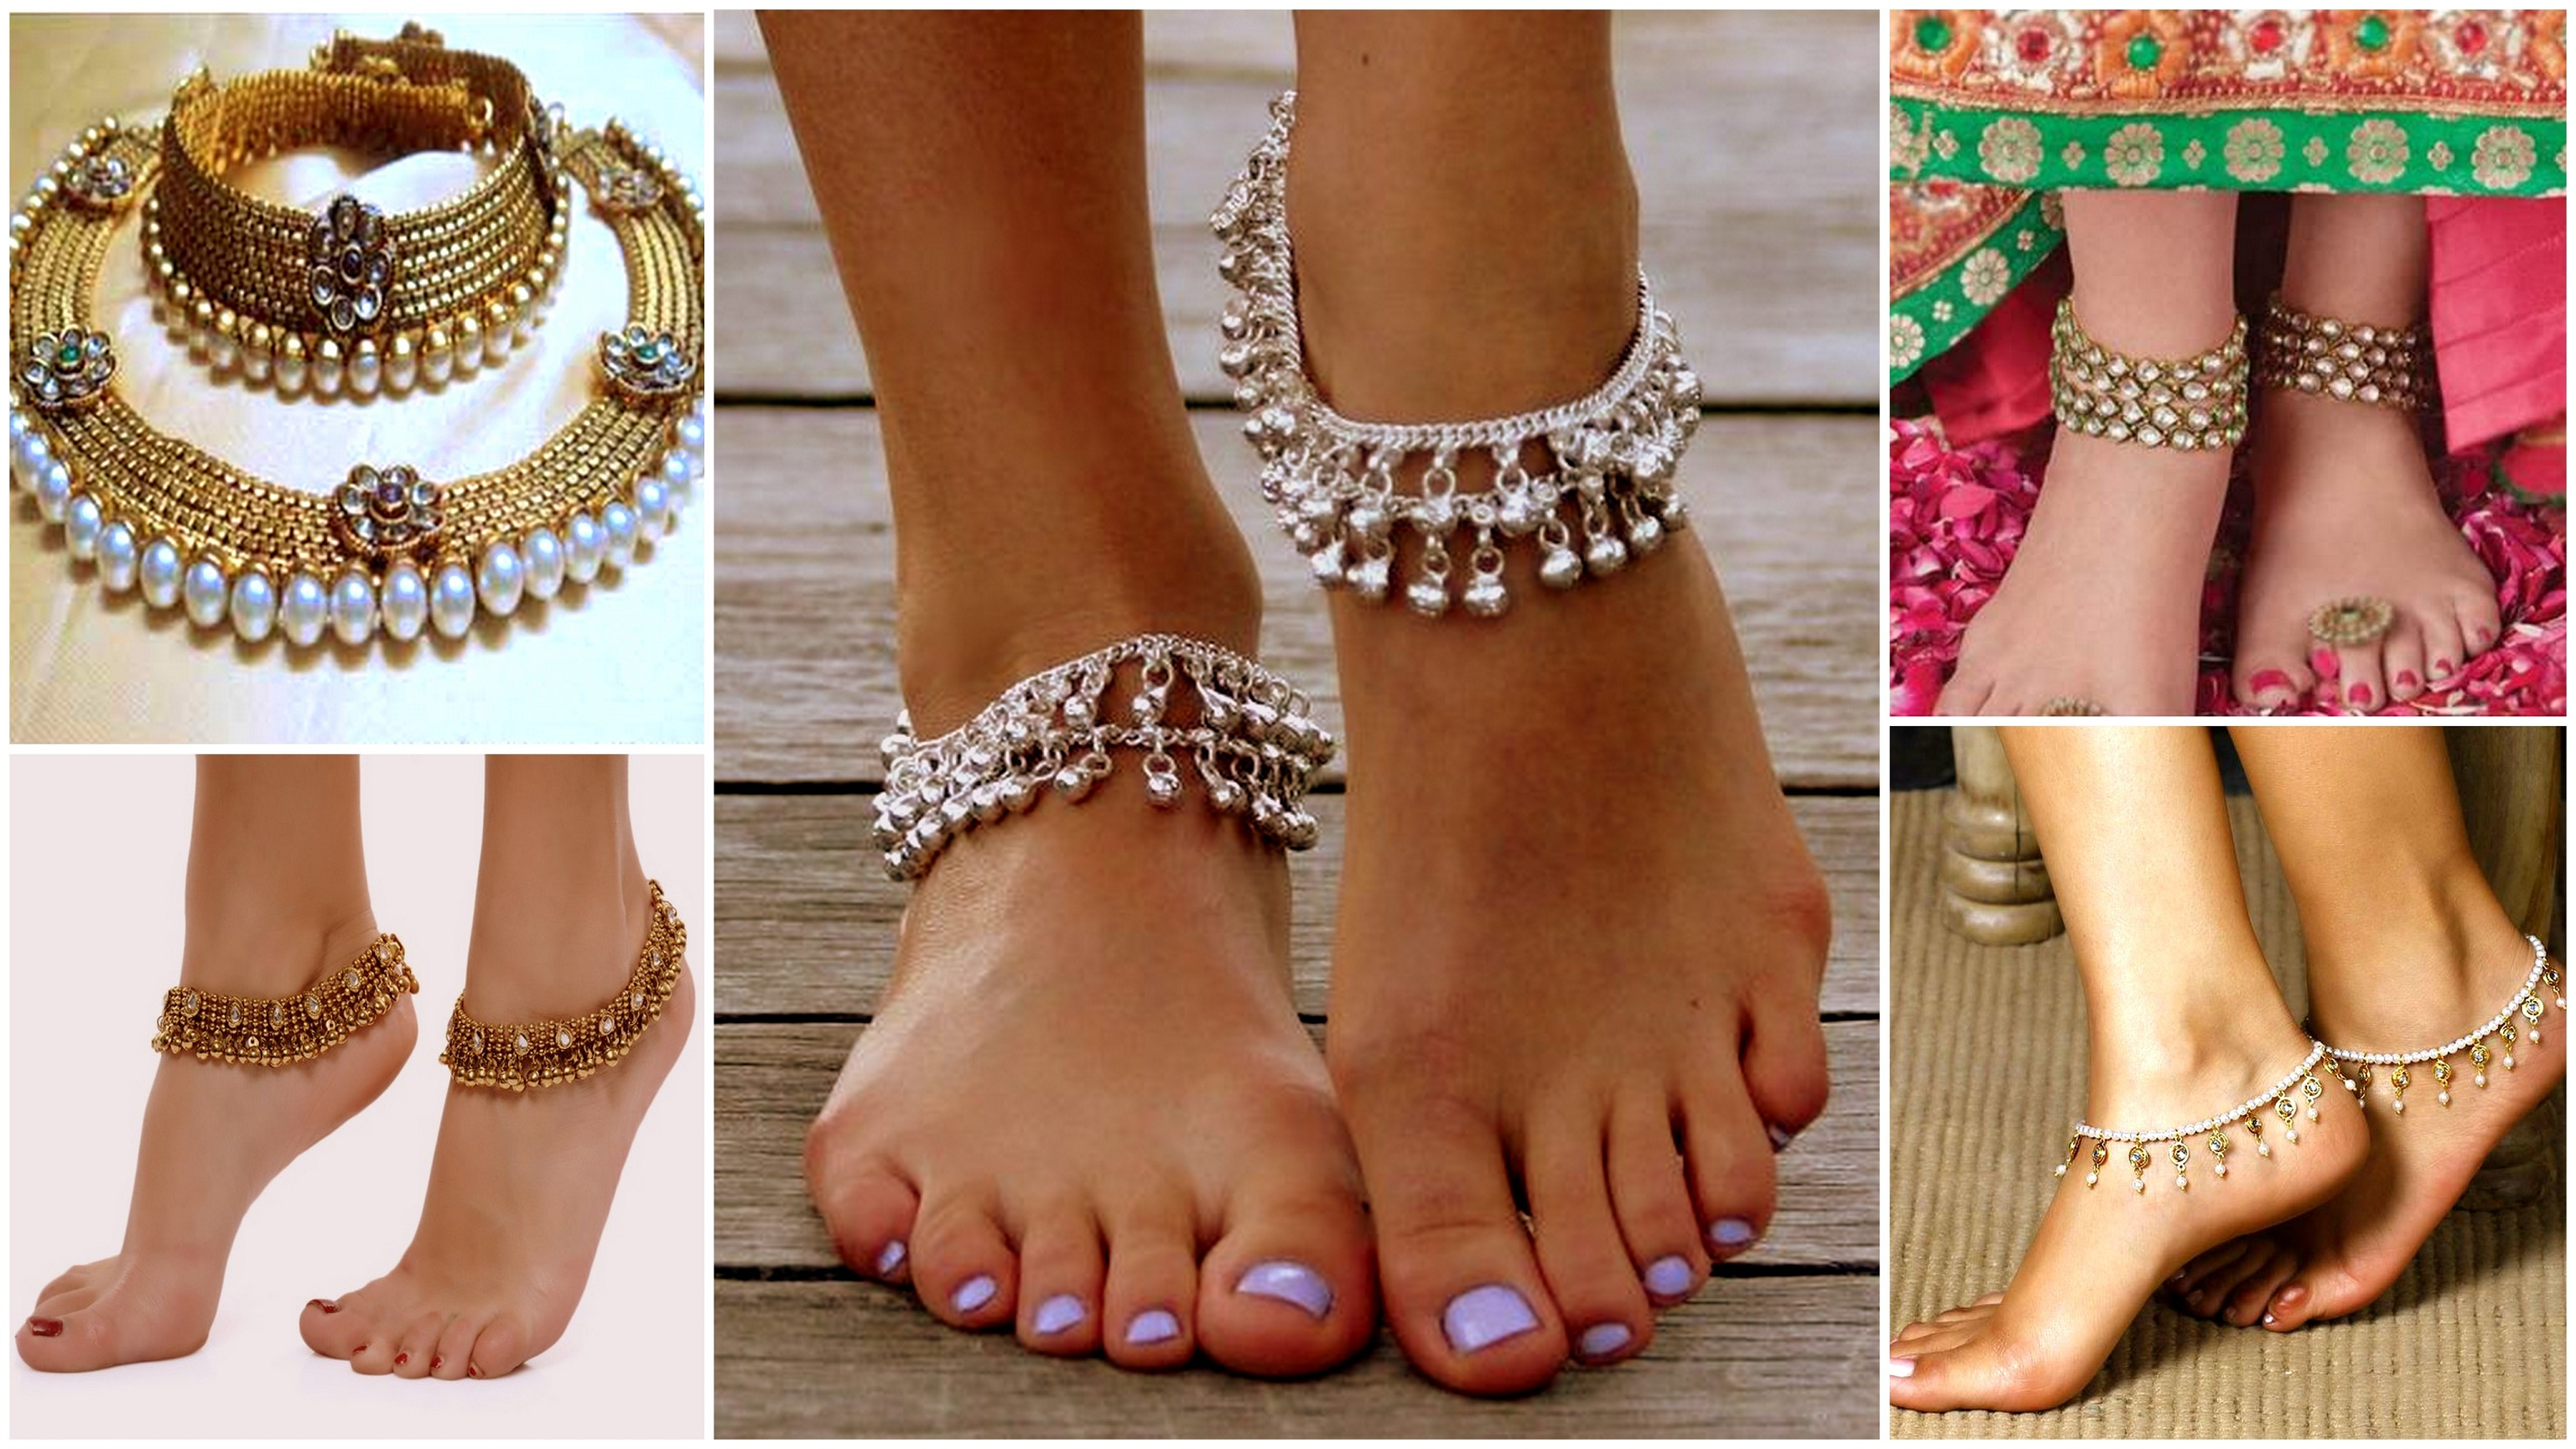 avanti gold jewellers ltd from image uk womens pearl bracelet bracelets and chain anklet bangles